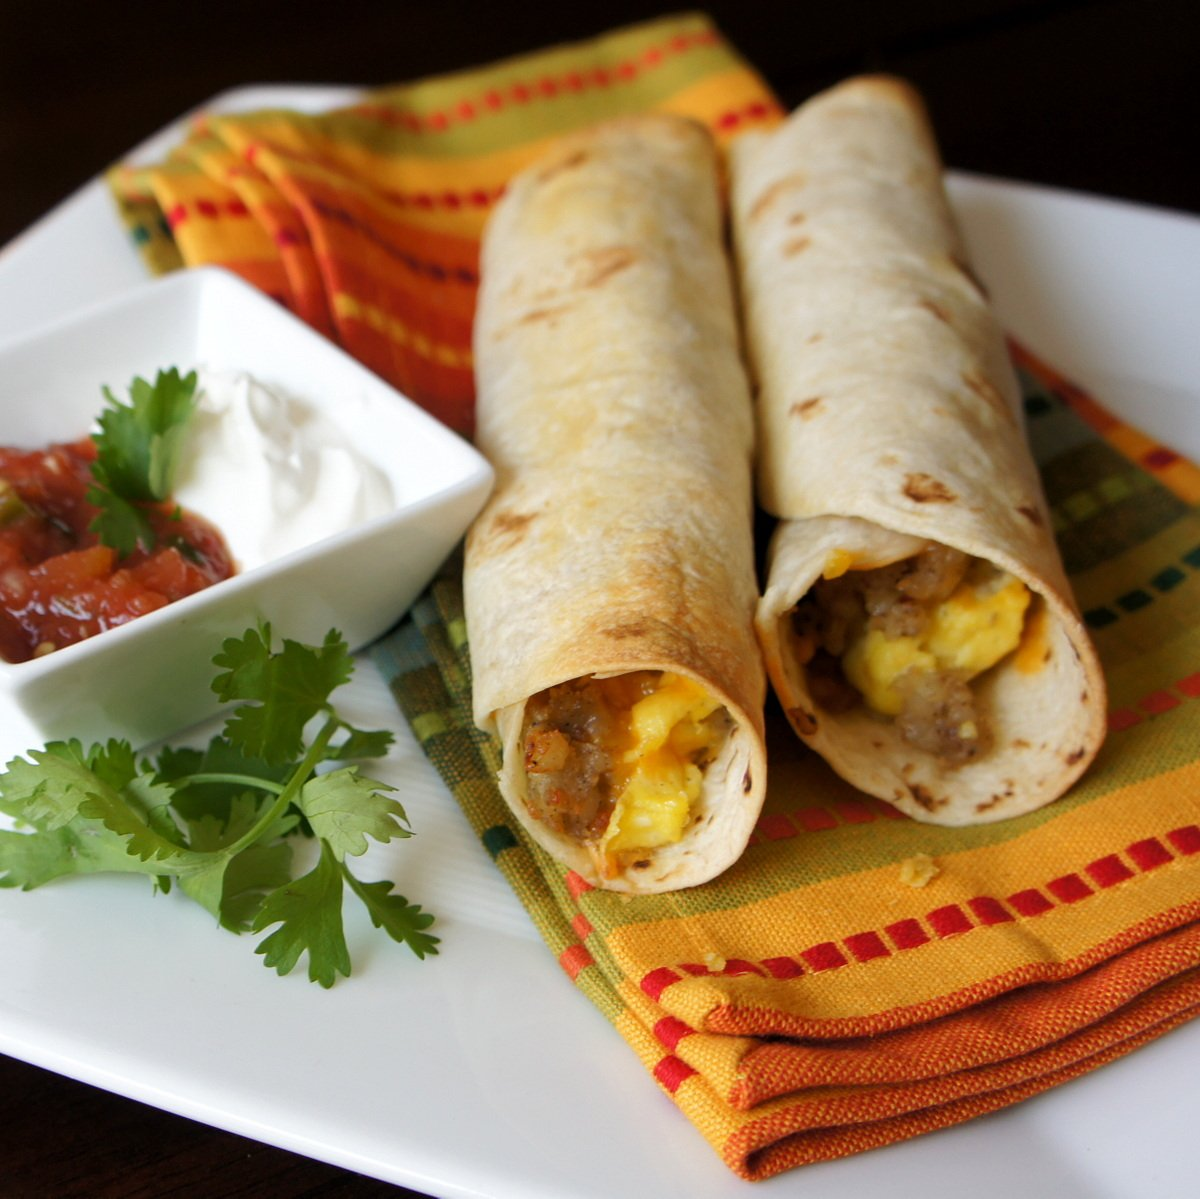 Sachsenk Chen sausage egg and cheese breakfast flautas i wash you